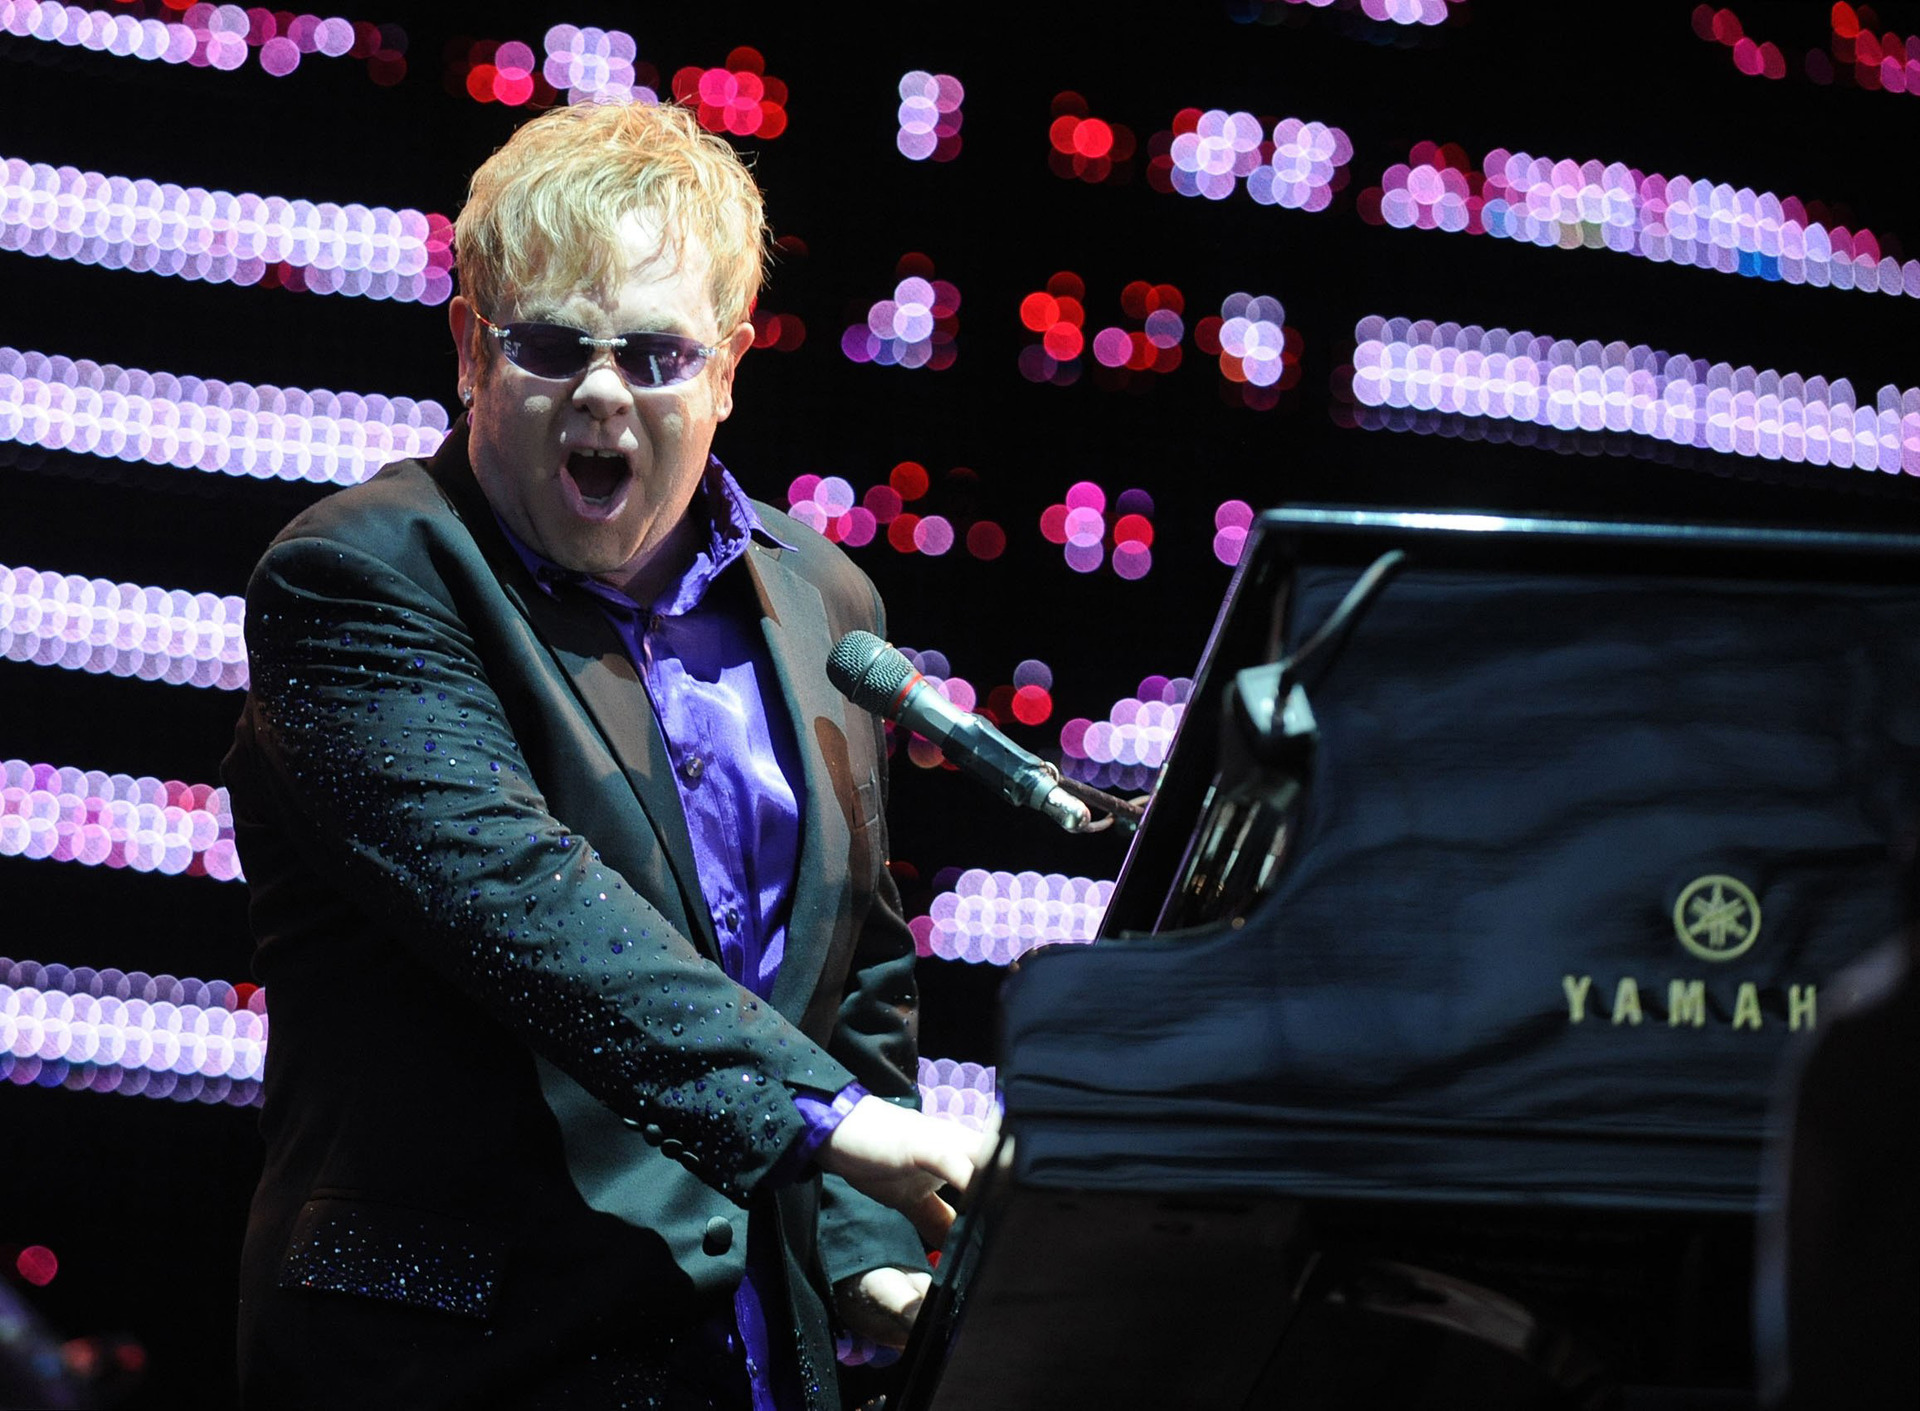 If Elton John could be any woman alive, he'd be Jacinda Ardern